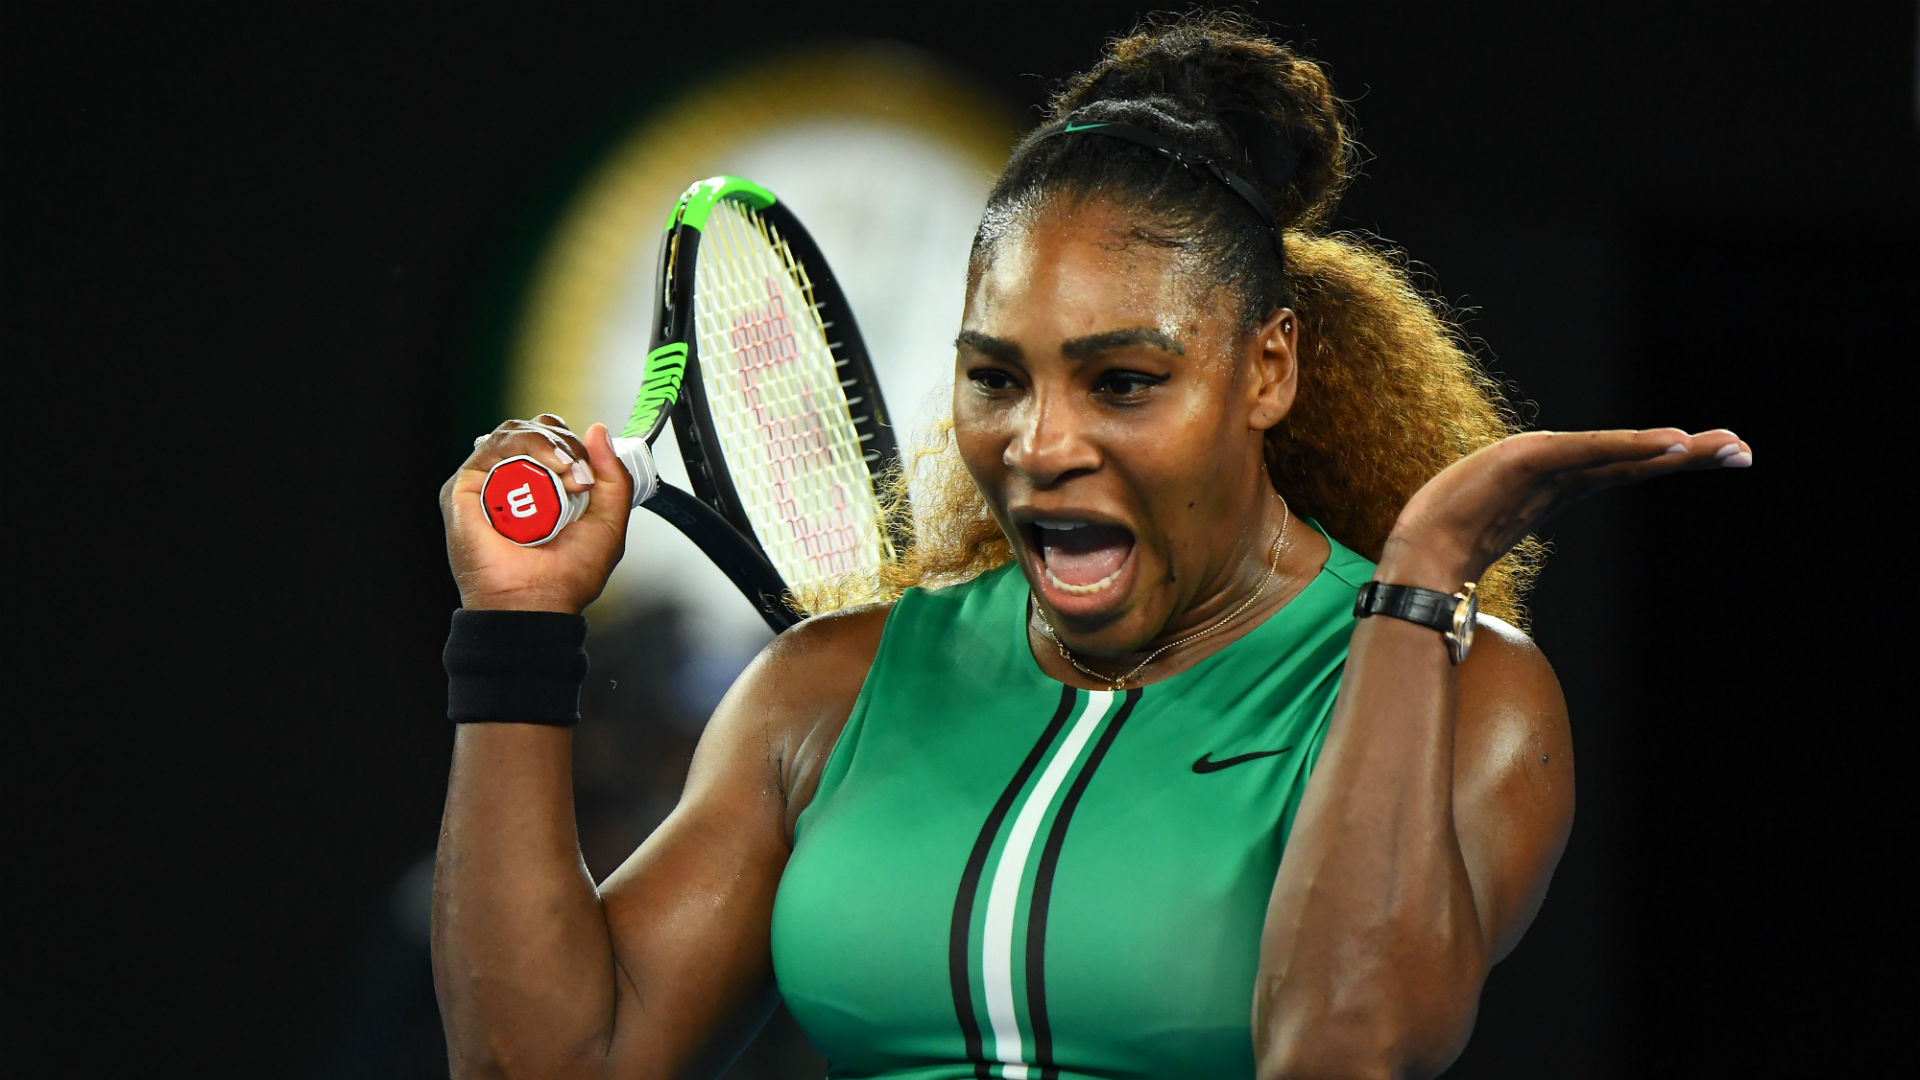 Serena coasts, difficulties for Halep and Muguruza's marathon